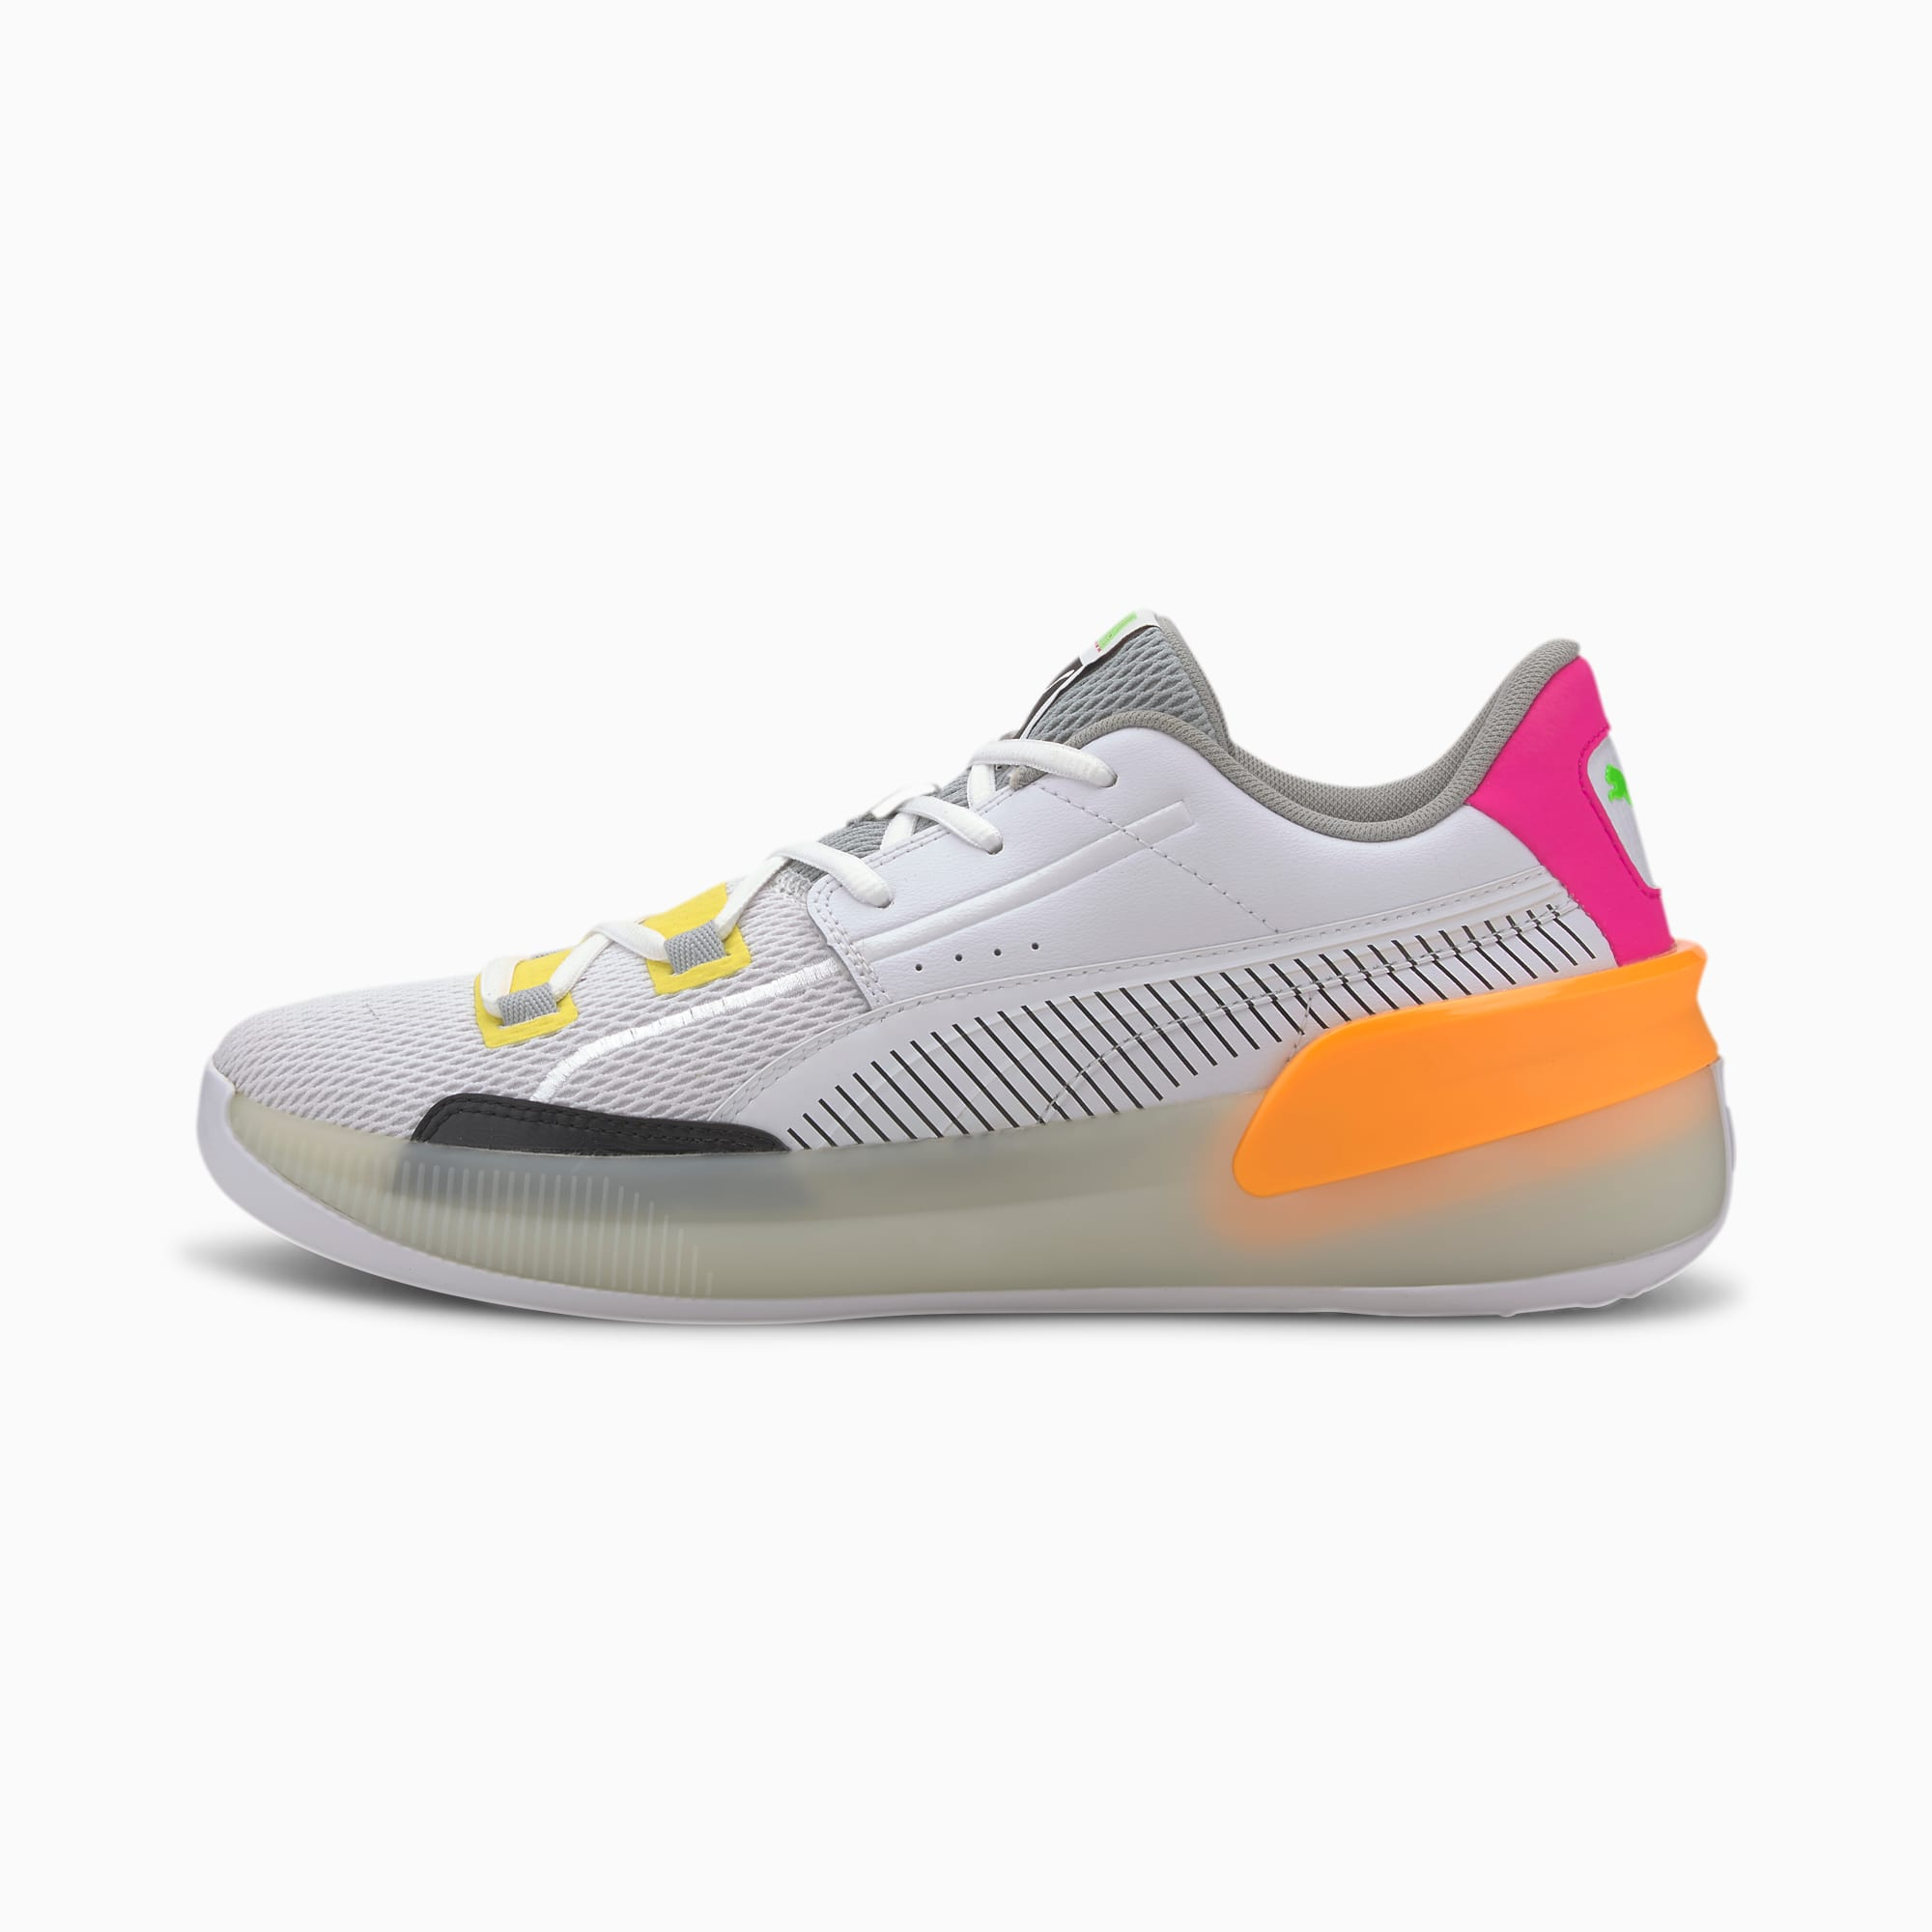 PUMA Clyde Hardwood Release Date | Puma basketball shoes